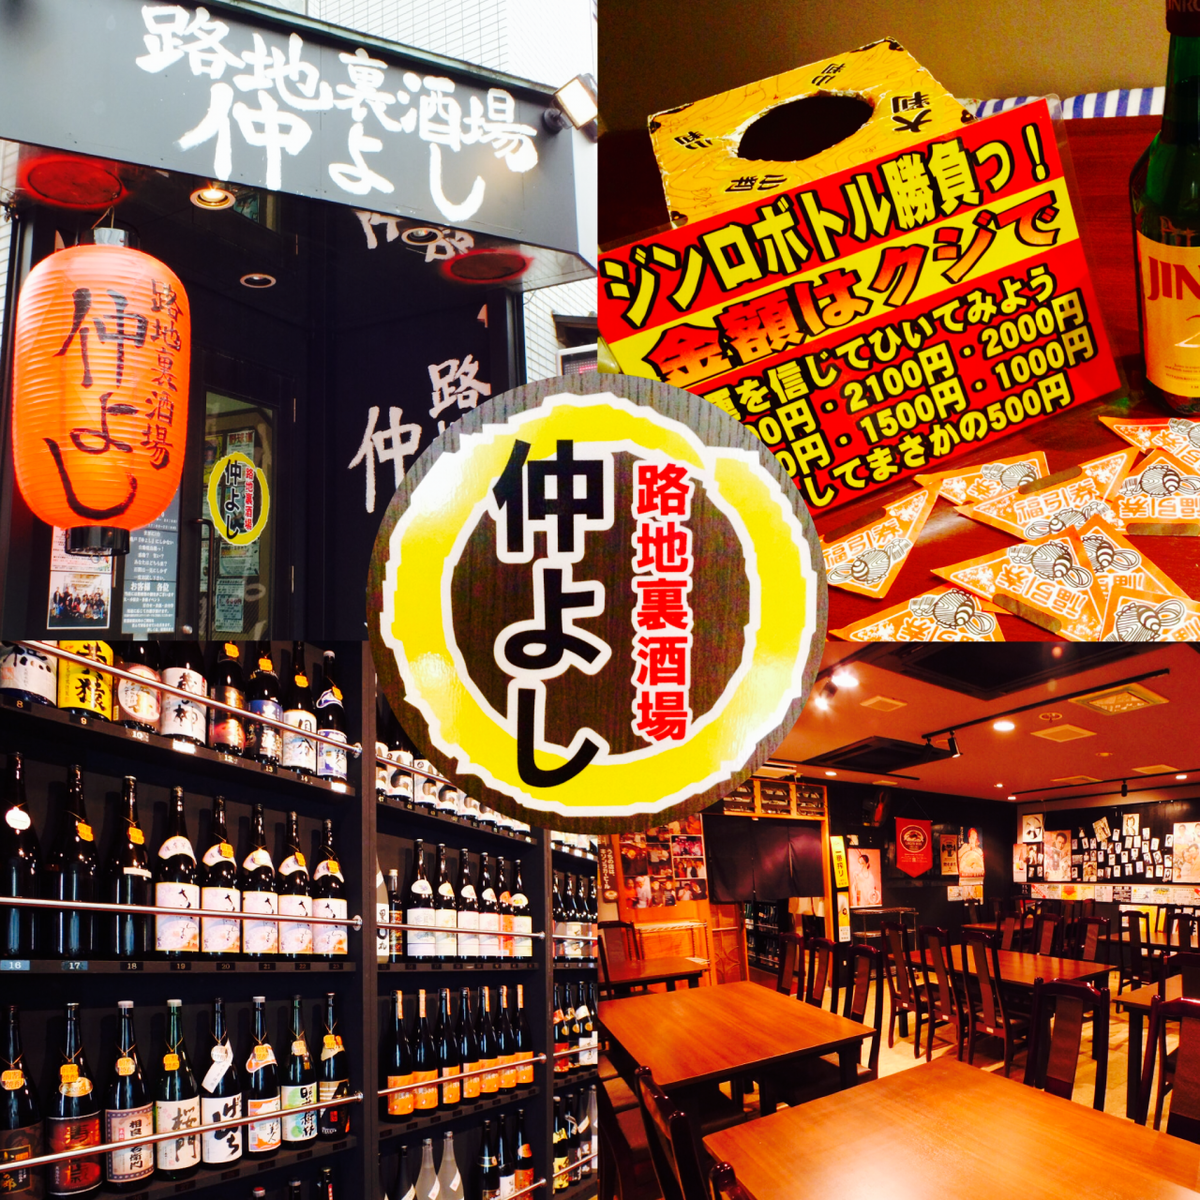 NEW OPEN !! Kameido Station 3-minute walk up to 131 people available large tavern !! amusement tavern!